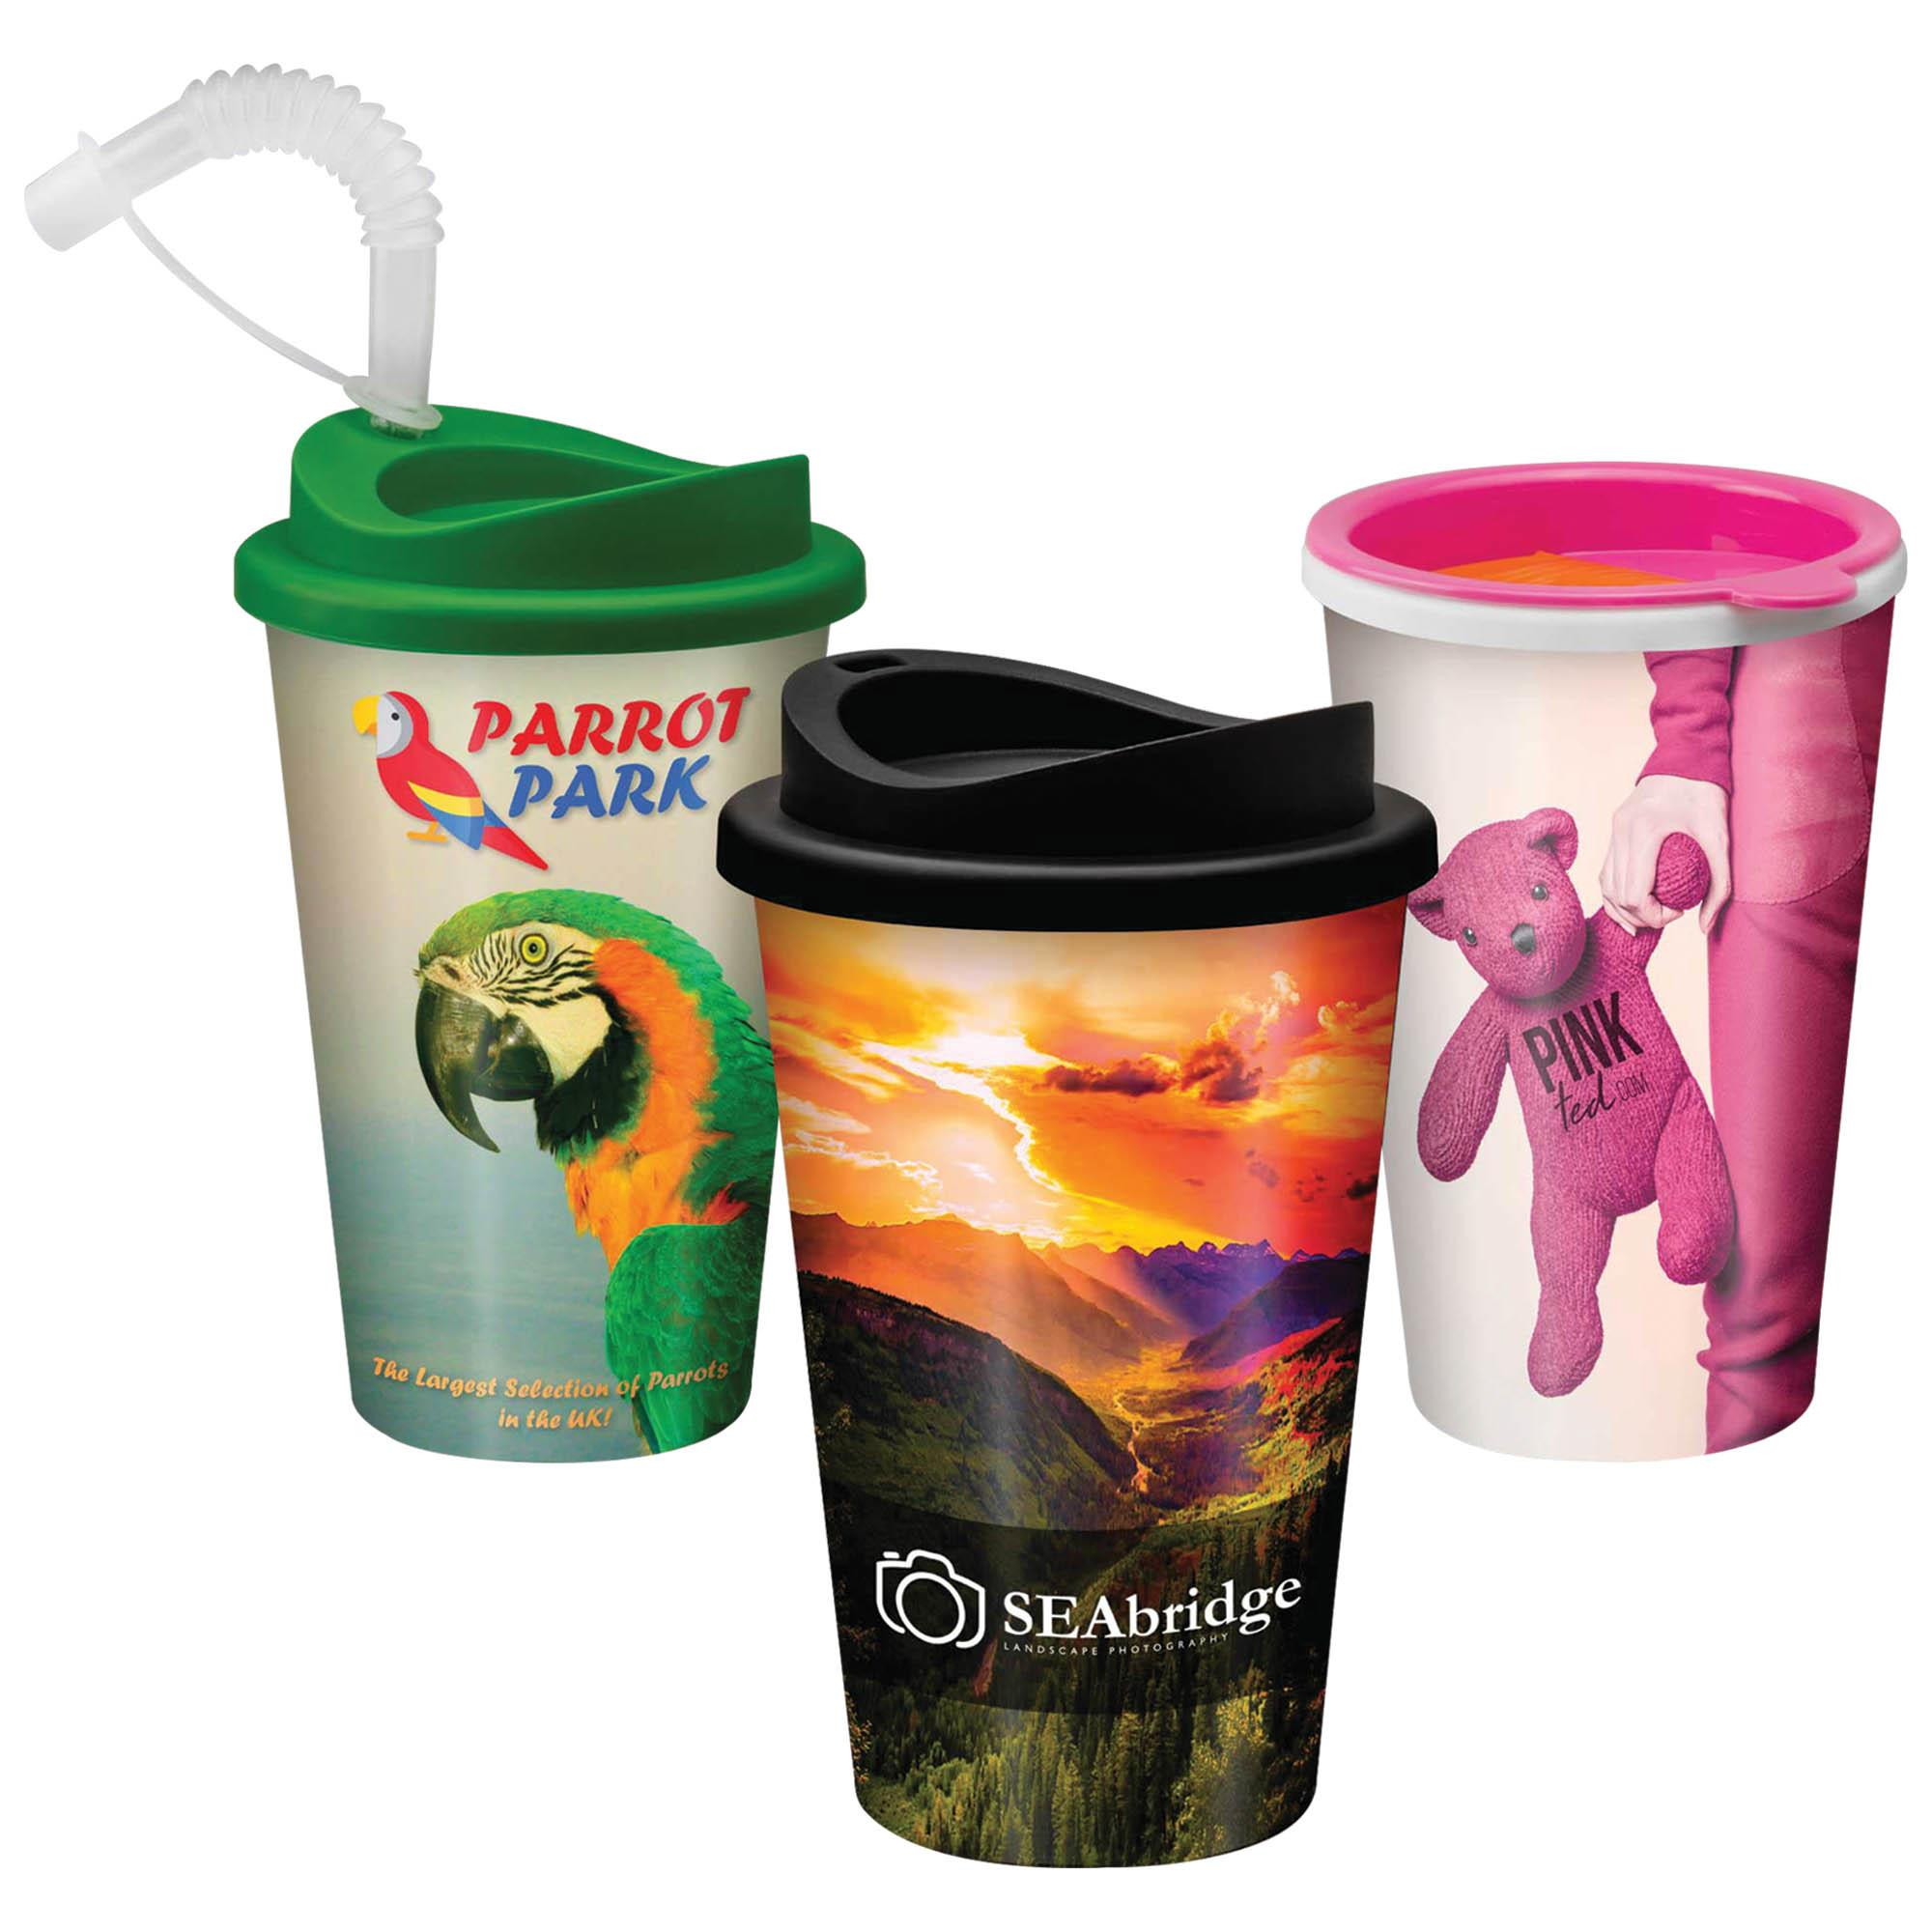 CUSTOM-TRAVELCUPLGE - Deposit Return Scheme Reusable Travel Cup 12oz/320ml - CUSTOM-TRAVELCUPLGE